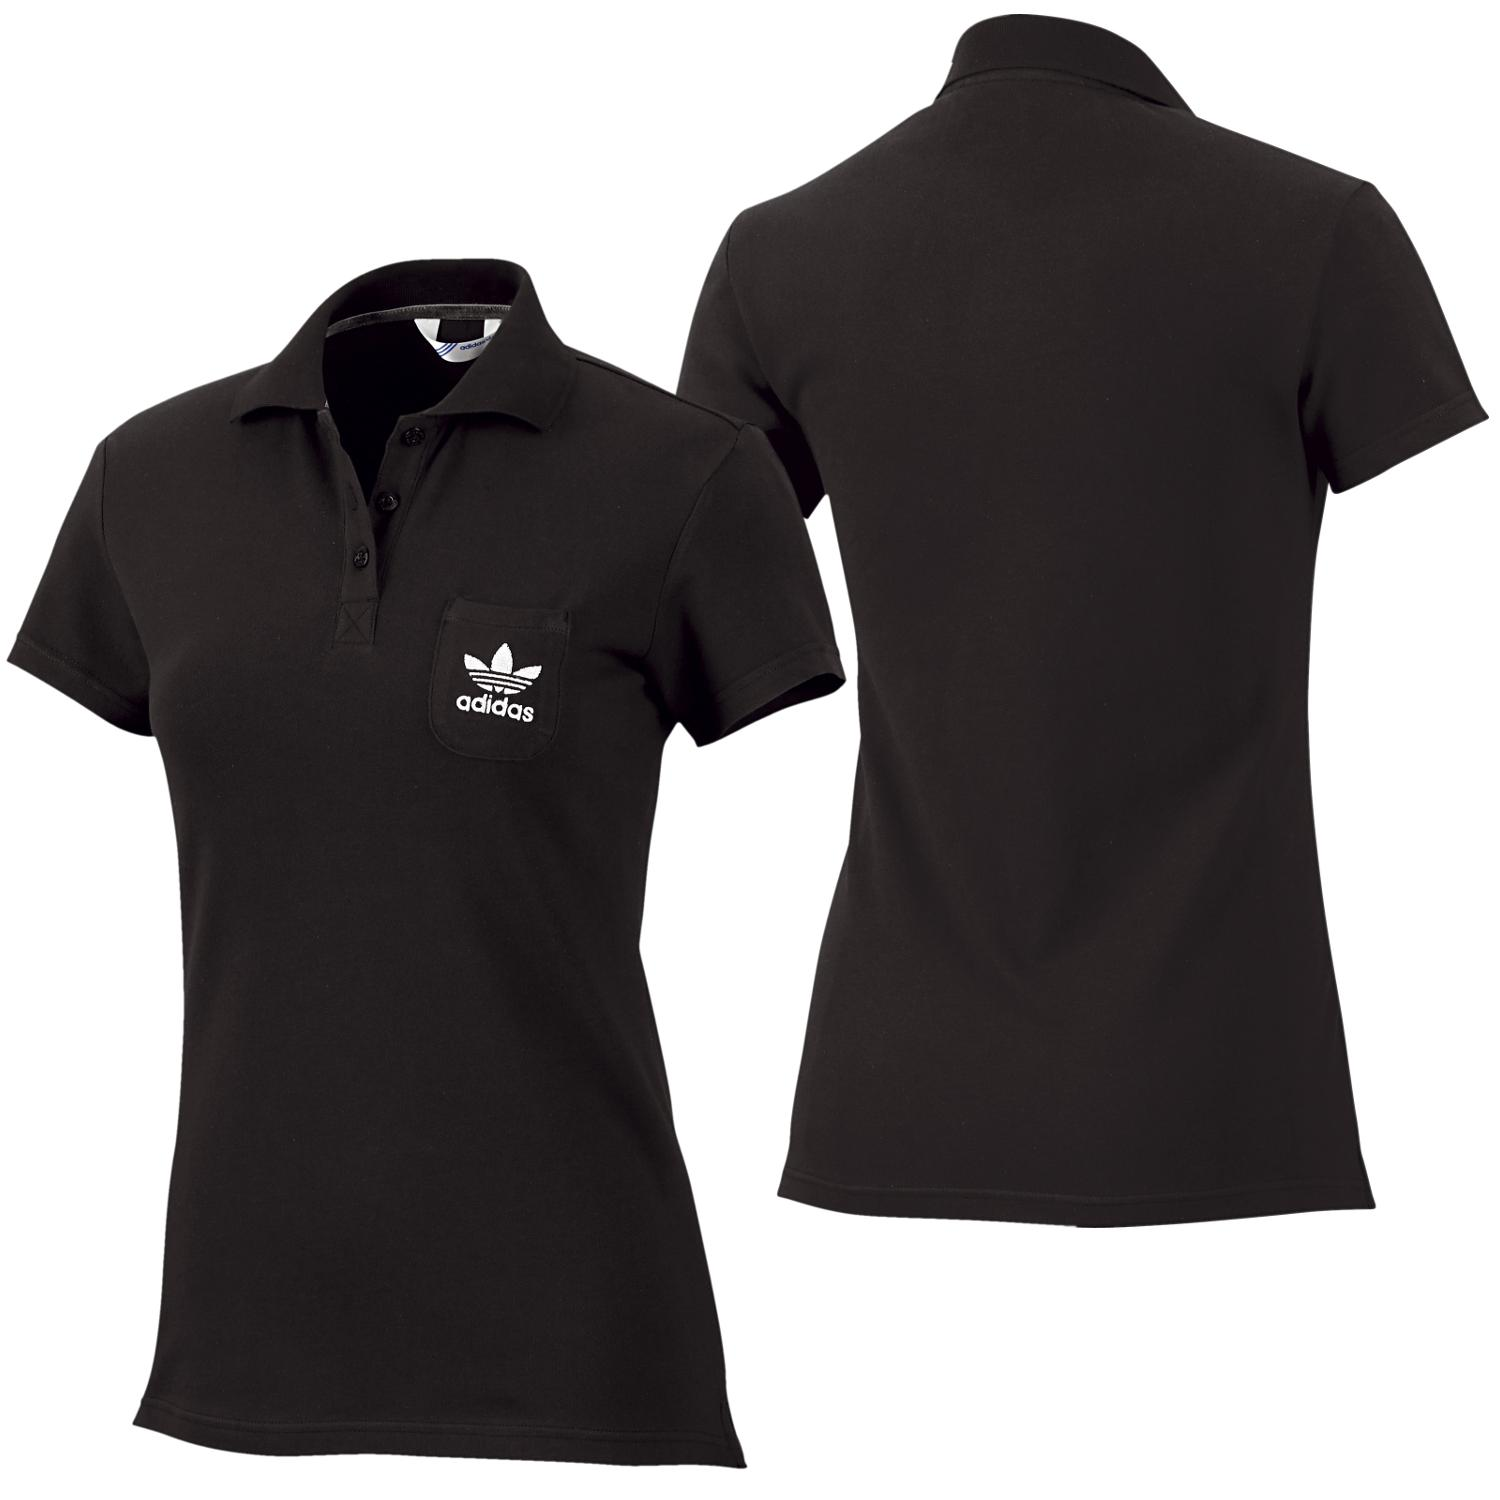 adidas originals damen poloshirt schwarz adi polo shirt core golf ebay. Black Bedroom Furniture Sets. Home Design Ideas